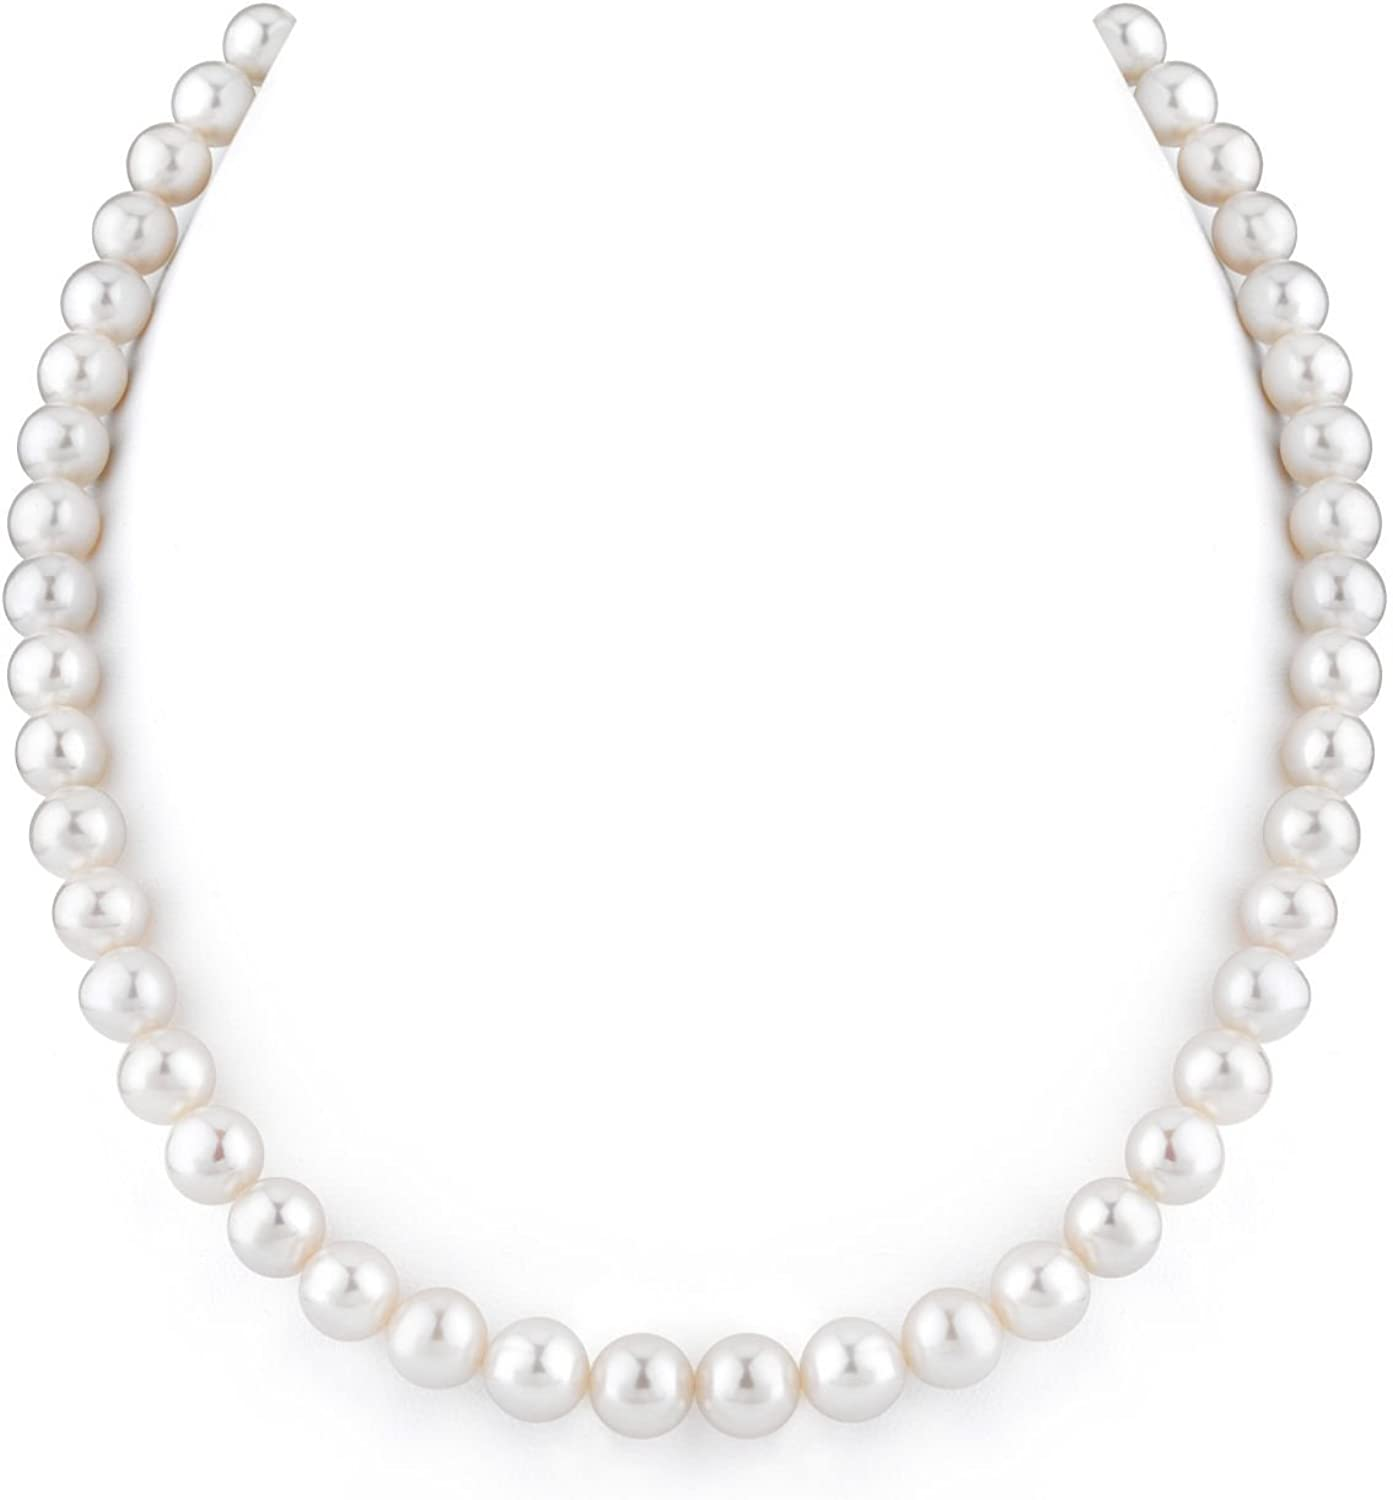 THE PEARL SOURCE 14K Gold 8-9mm AAAA Quality White Freshwater Cultured Pearl Necklace for Women in 17